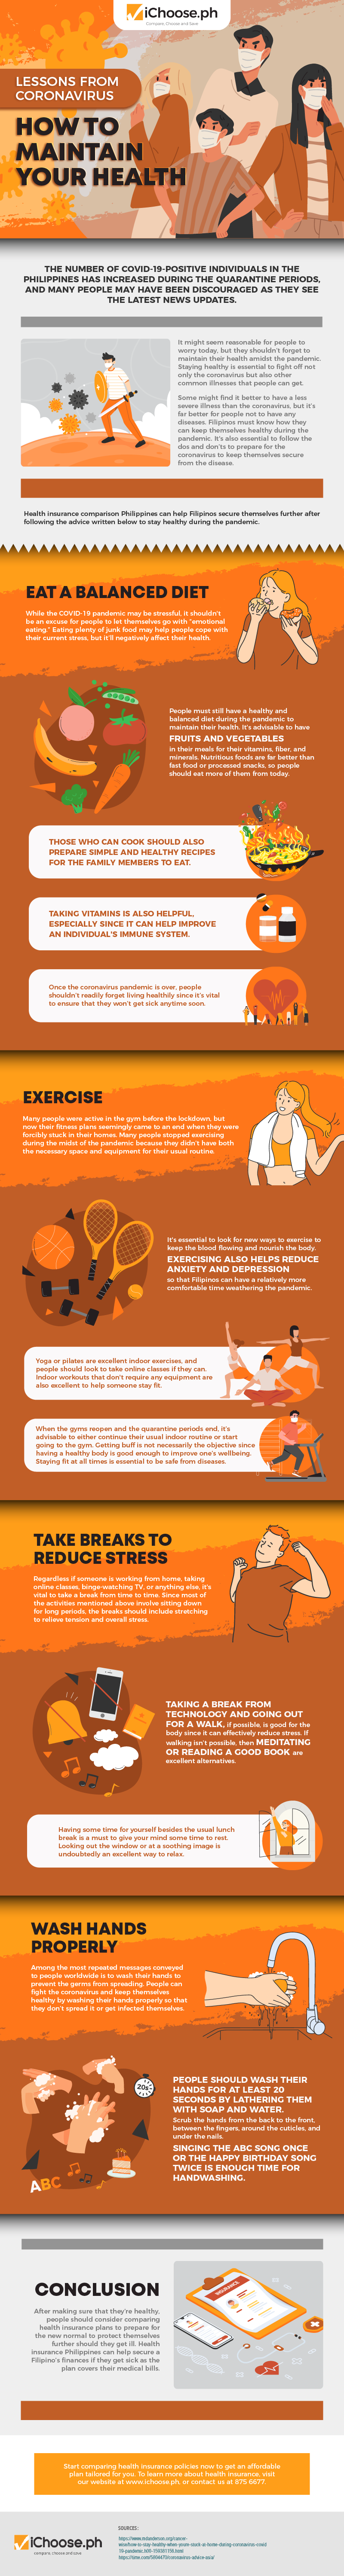 Lessons From Coronavirus: How To Maintain Your Health #infographic